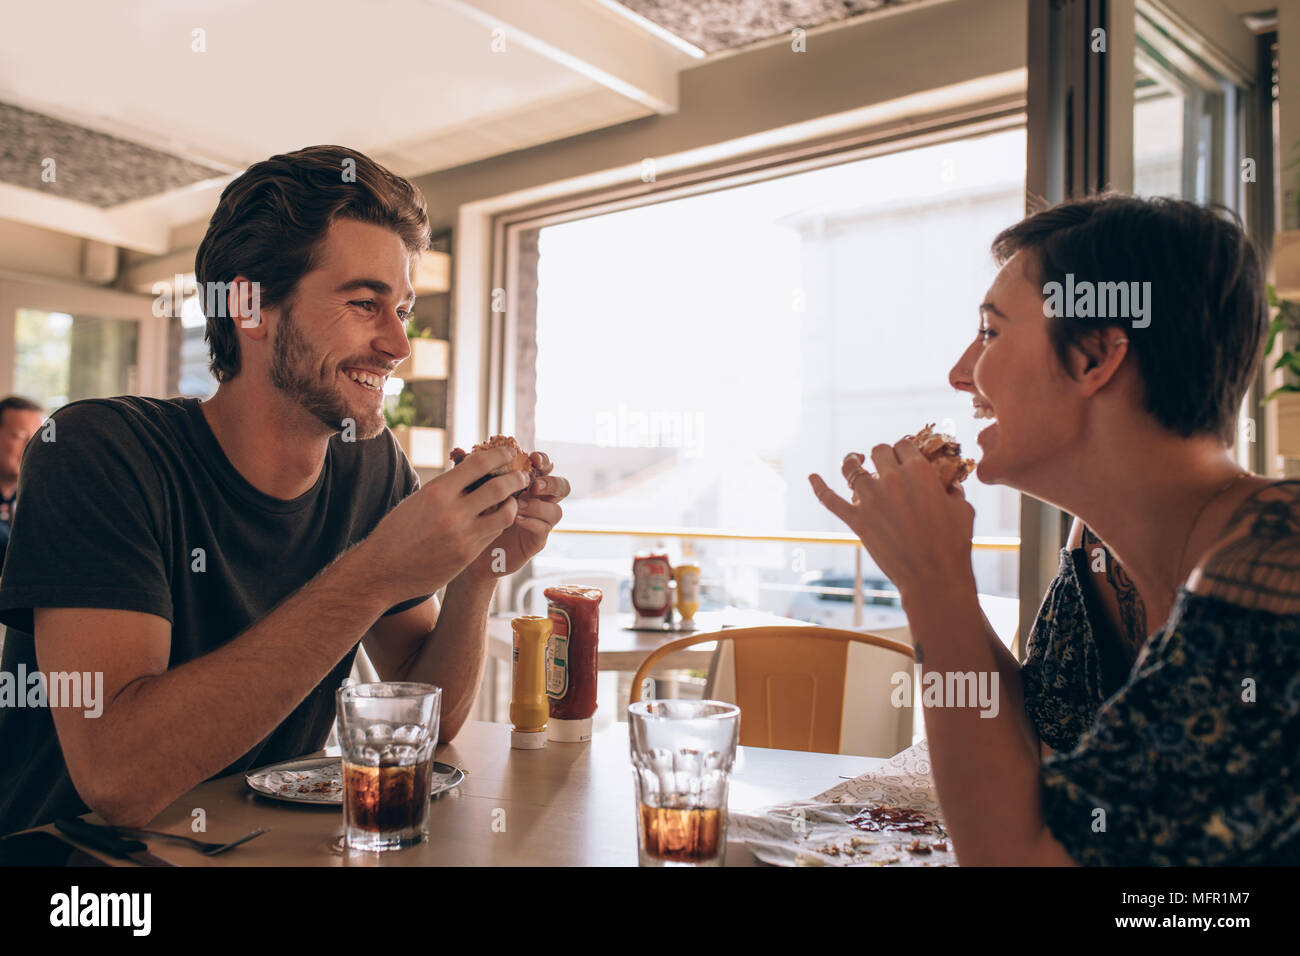 Happy couple eating burger and enjoying in cafe. Young man talking with his girlfriend and smiling while eating at a restaurant. - Stock Image